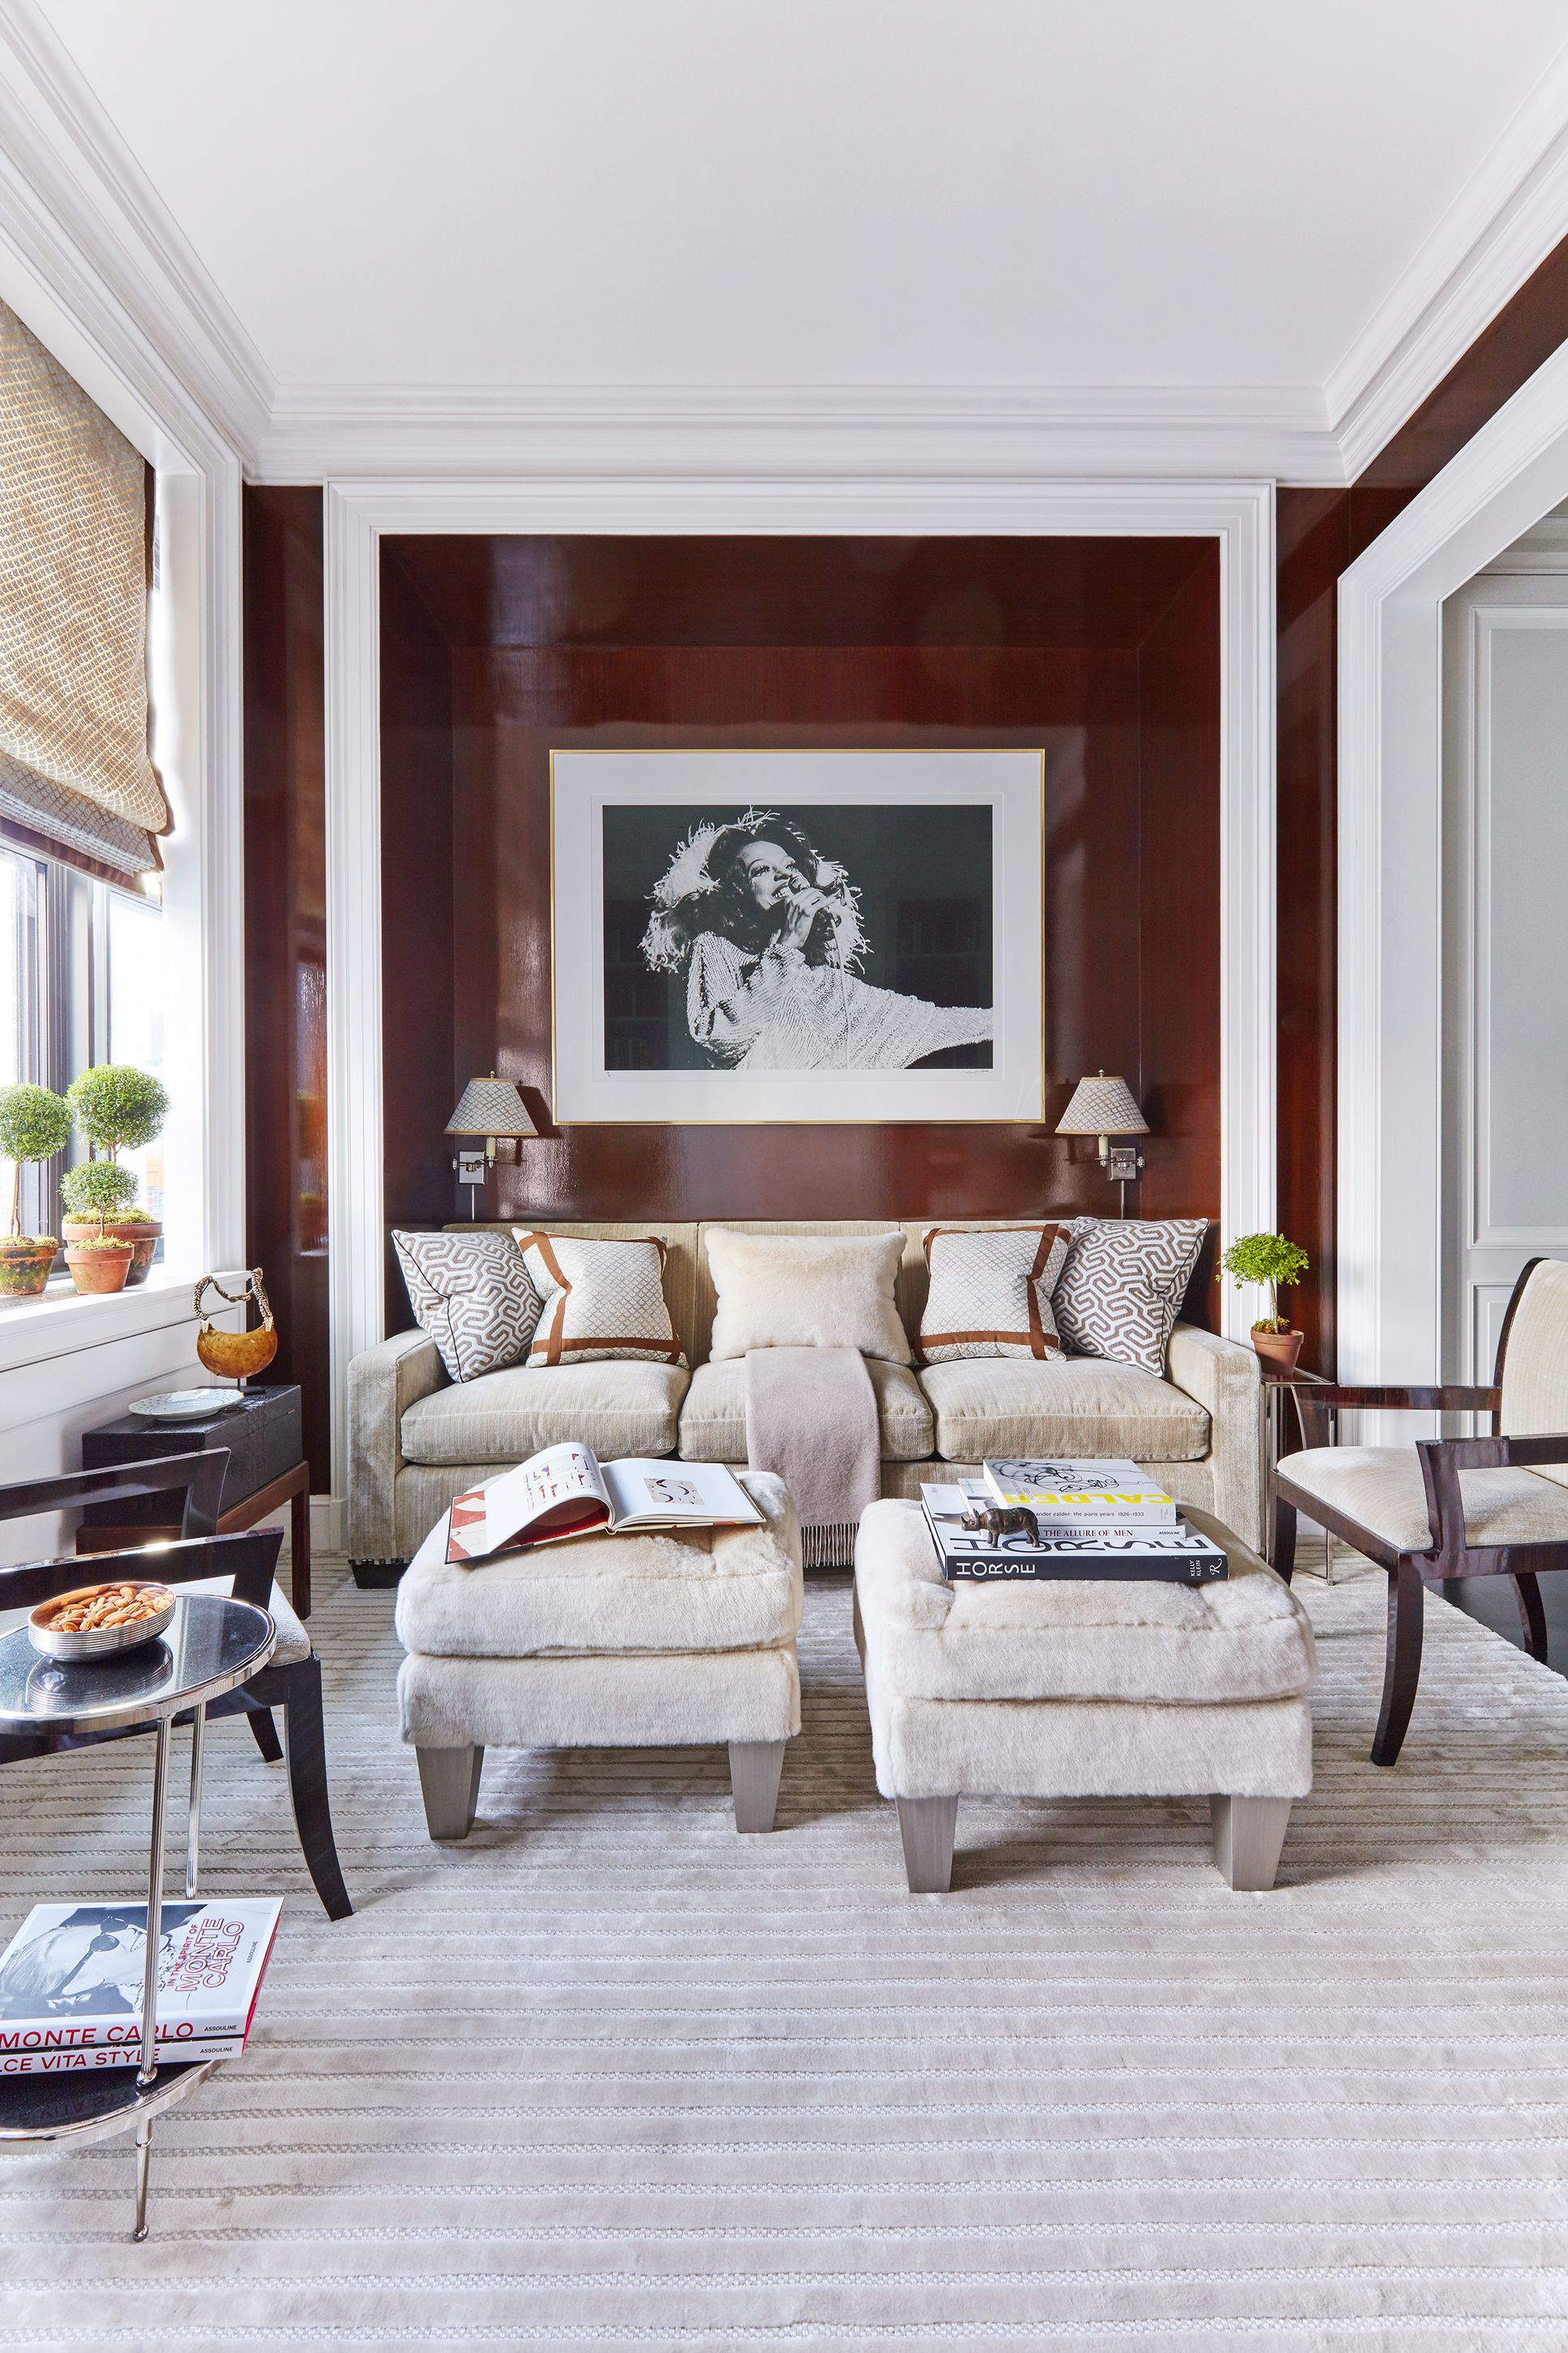 House Tour Inside A Breathtaking 1920 S Apartment Once Home To Diana Ross